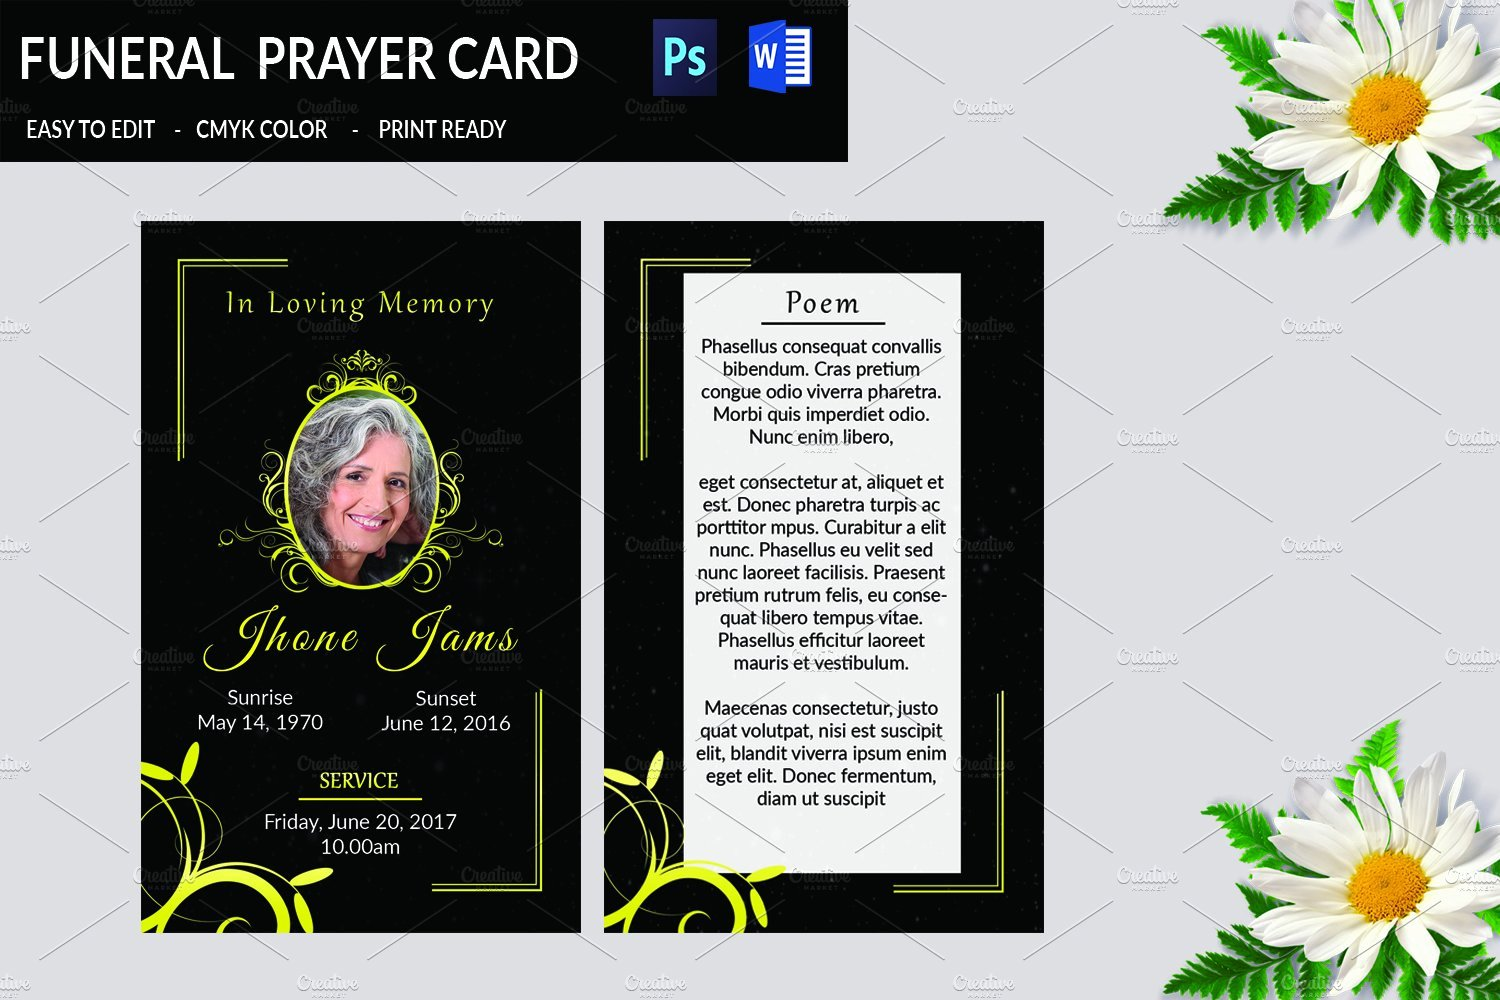 Funeral Prayer Cards Templates New Funeral Prayer Card Template V665 Card Templates